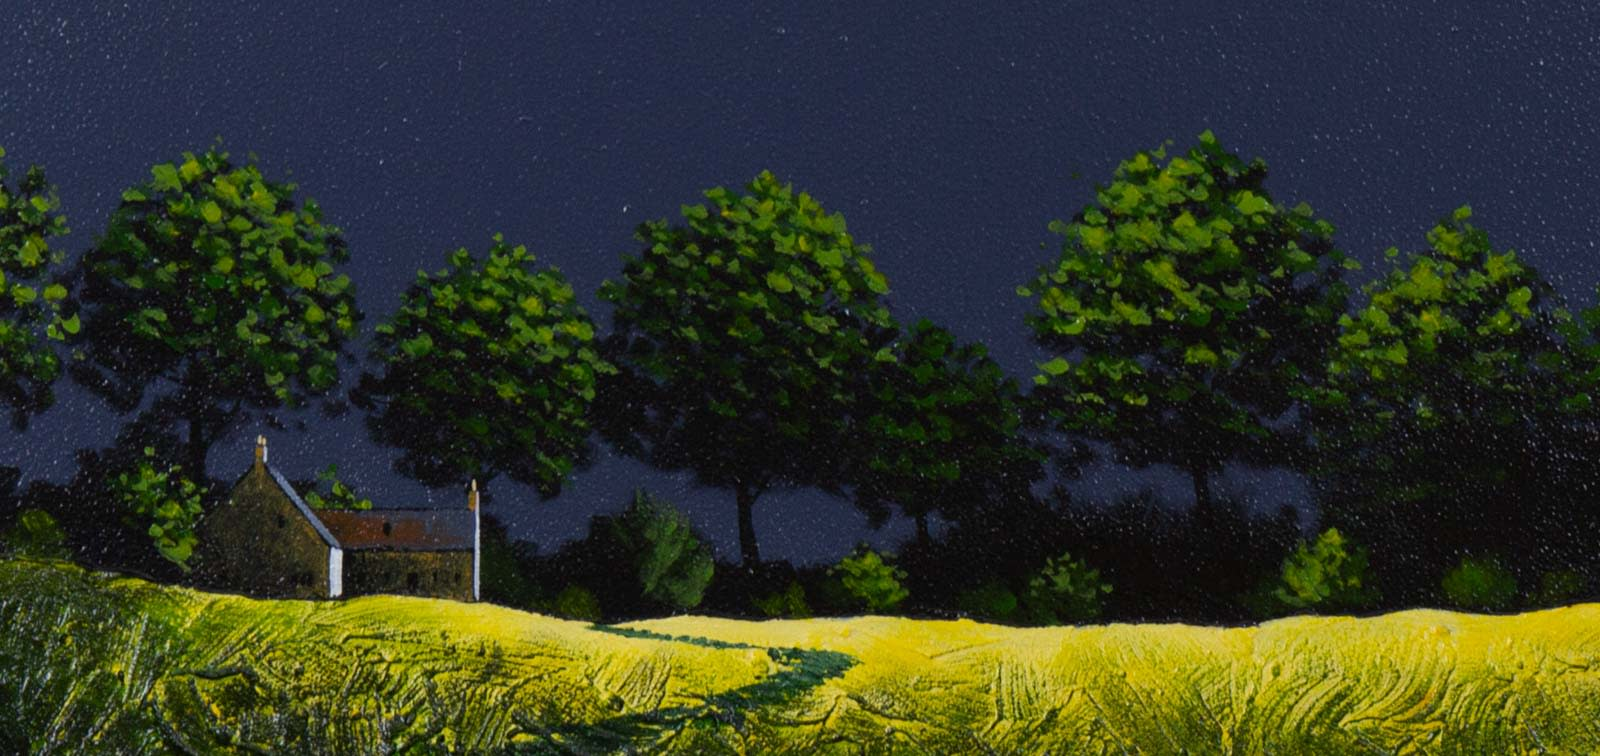 Across the Moonlit Fields